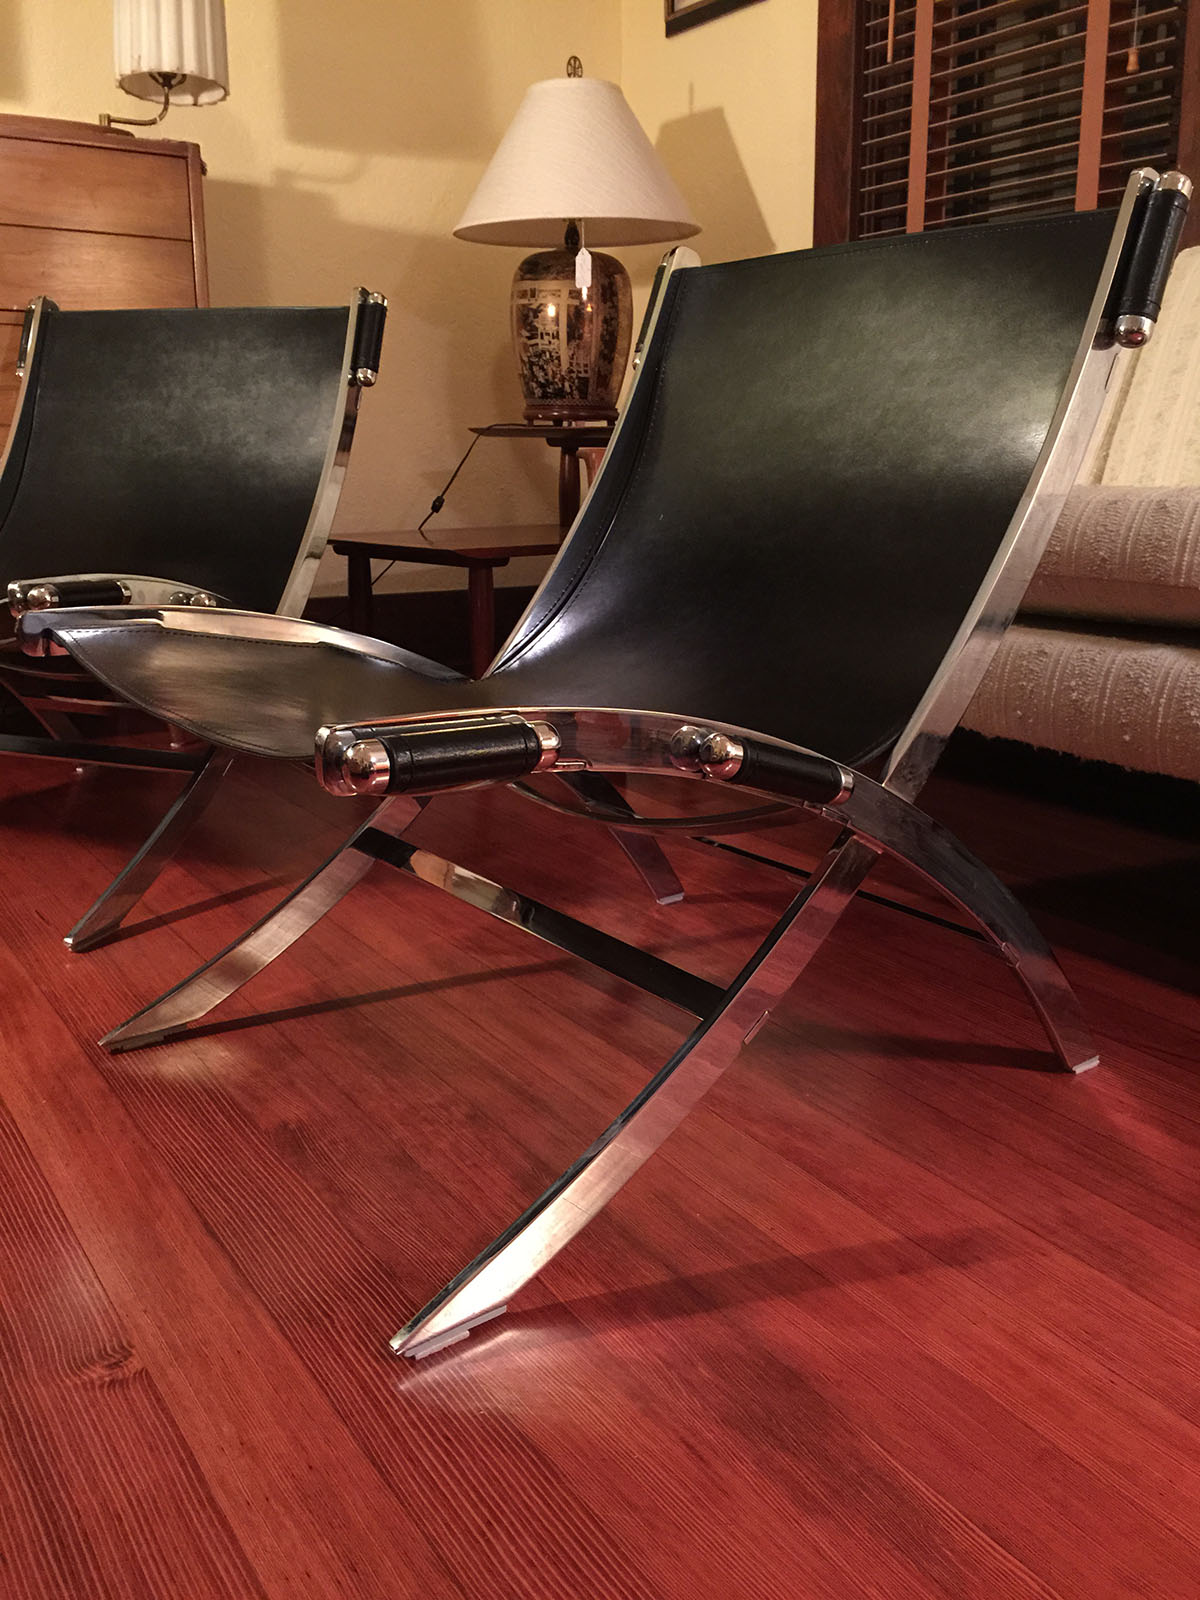 leather chair modern lounge outdoor target sold - & chrome paul tuttle style sling chairs to vintage